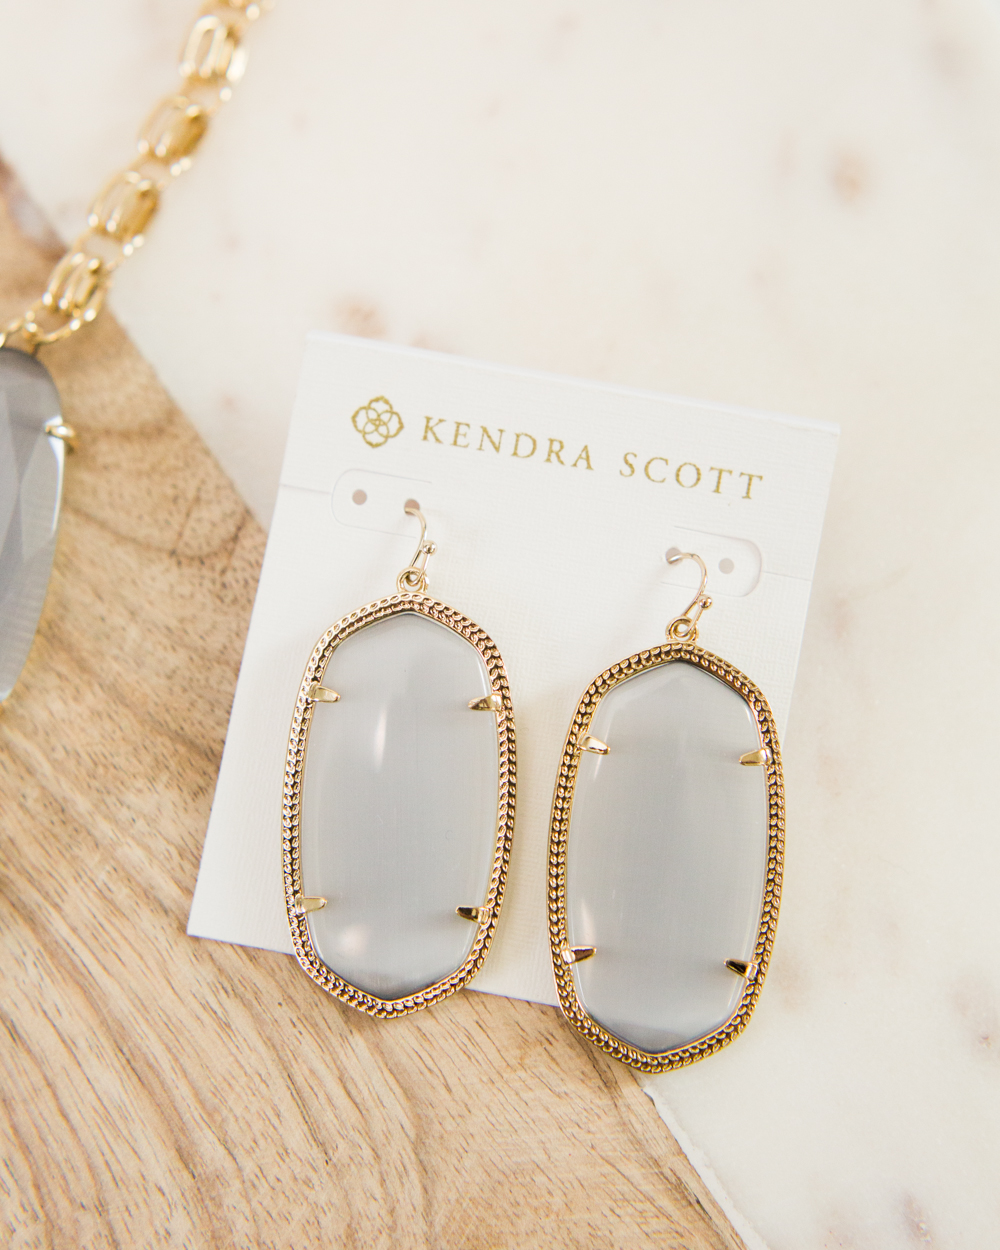 KENDRA-SCOTT-ONLINE-SHOPPING